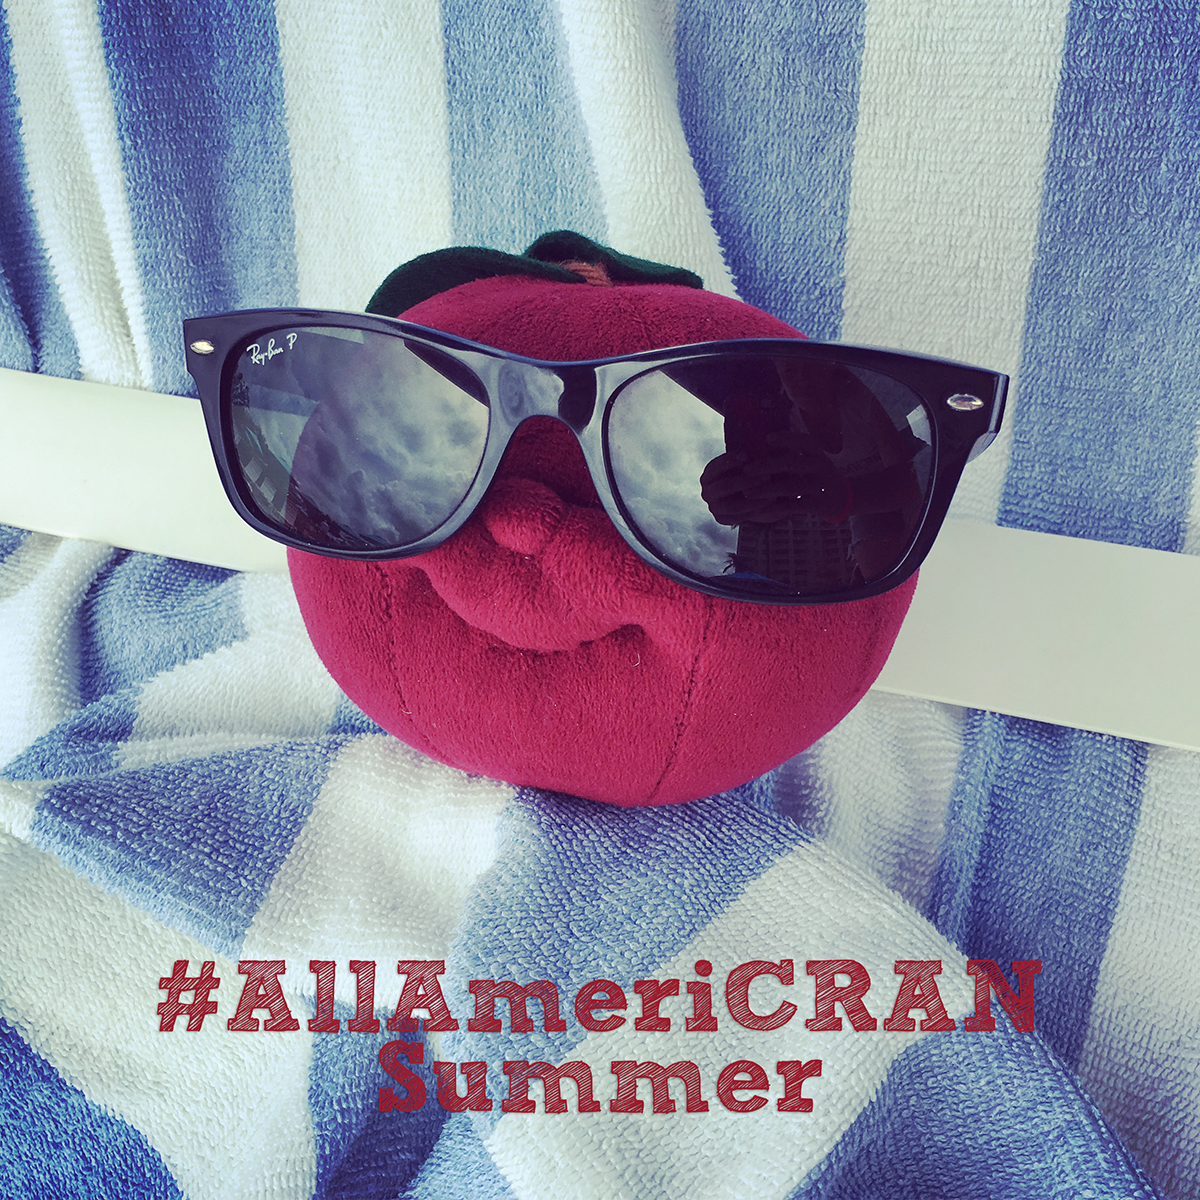 #AllAmeriCRAN Summer Instagram Giveaway Rules